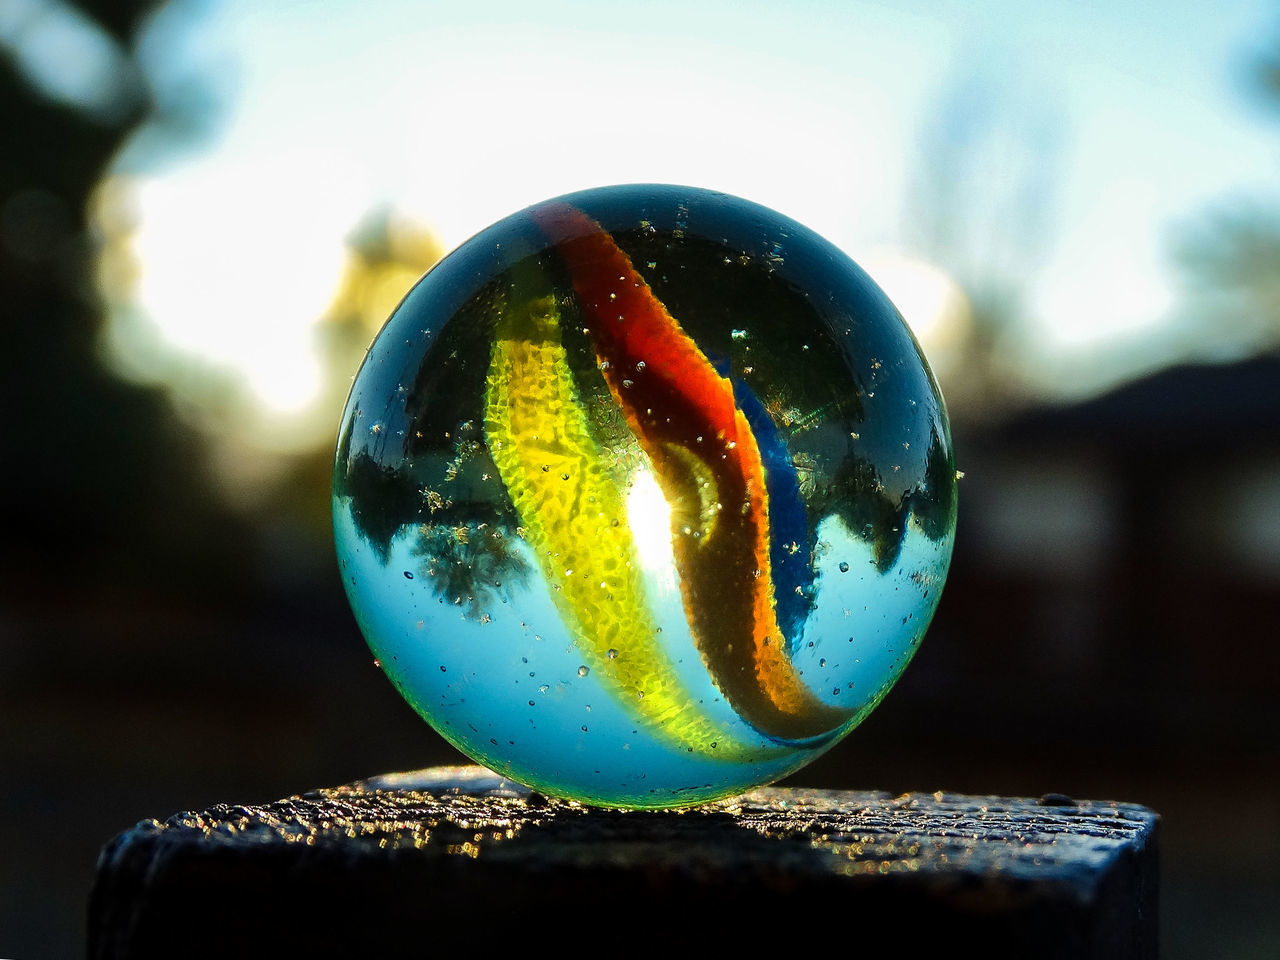 close-up, focus on foreground, no people, single object, outdoors, marbles, day, nature